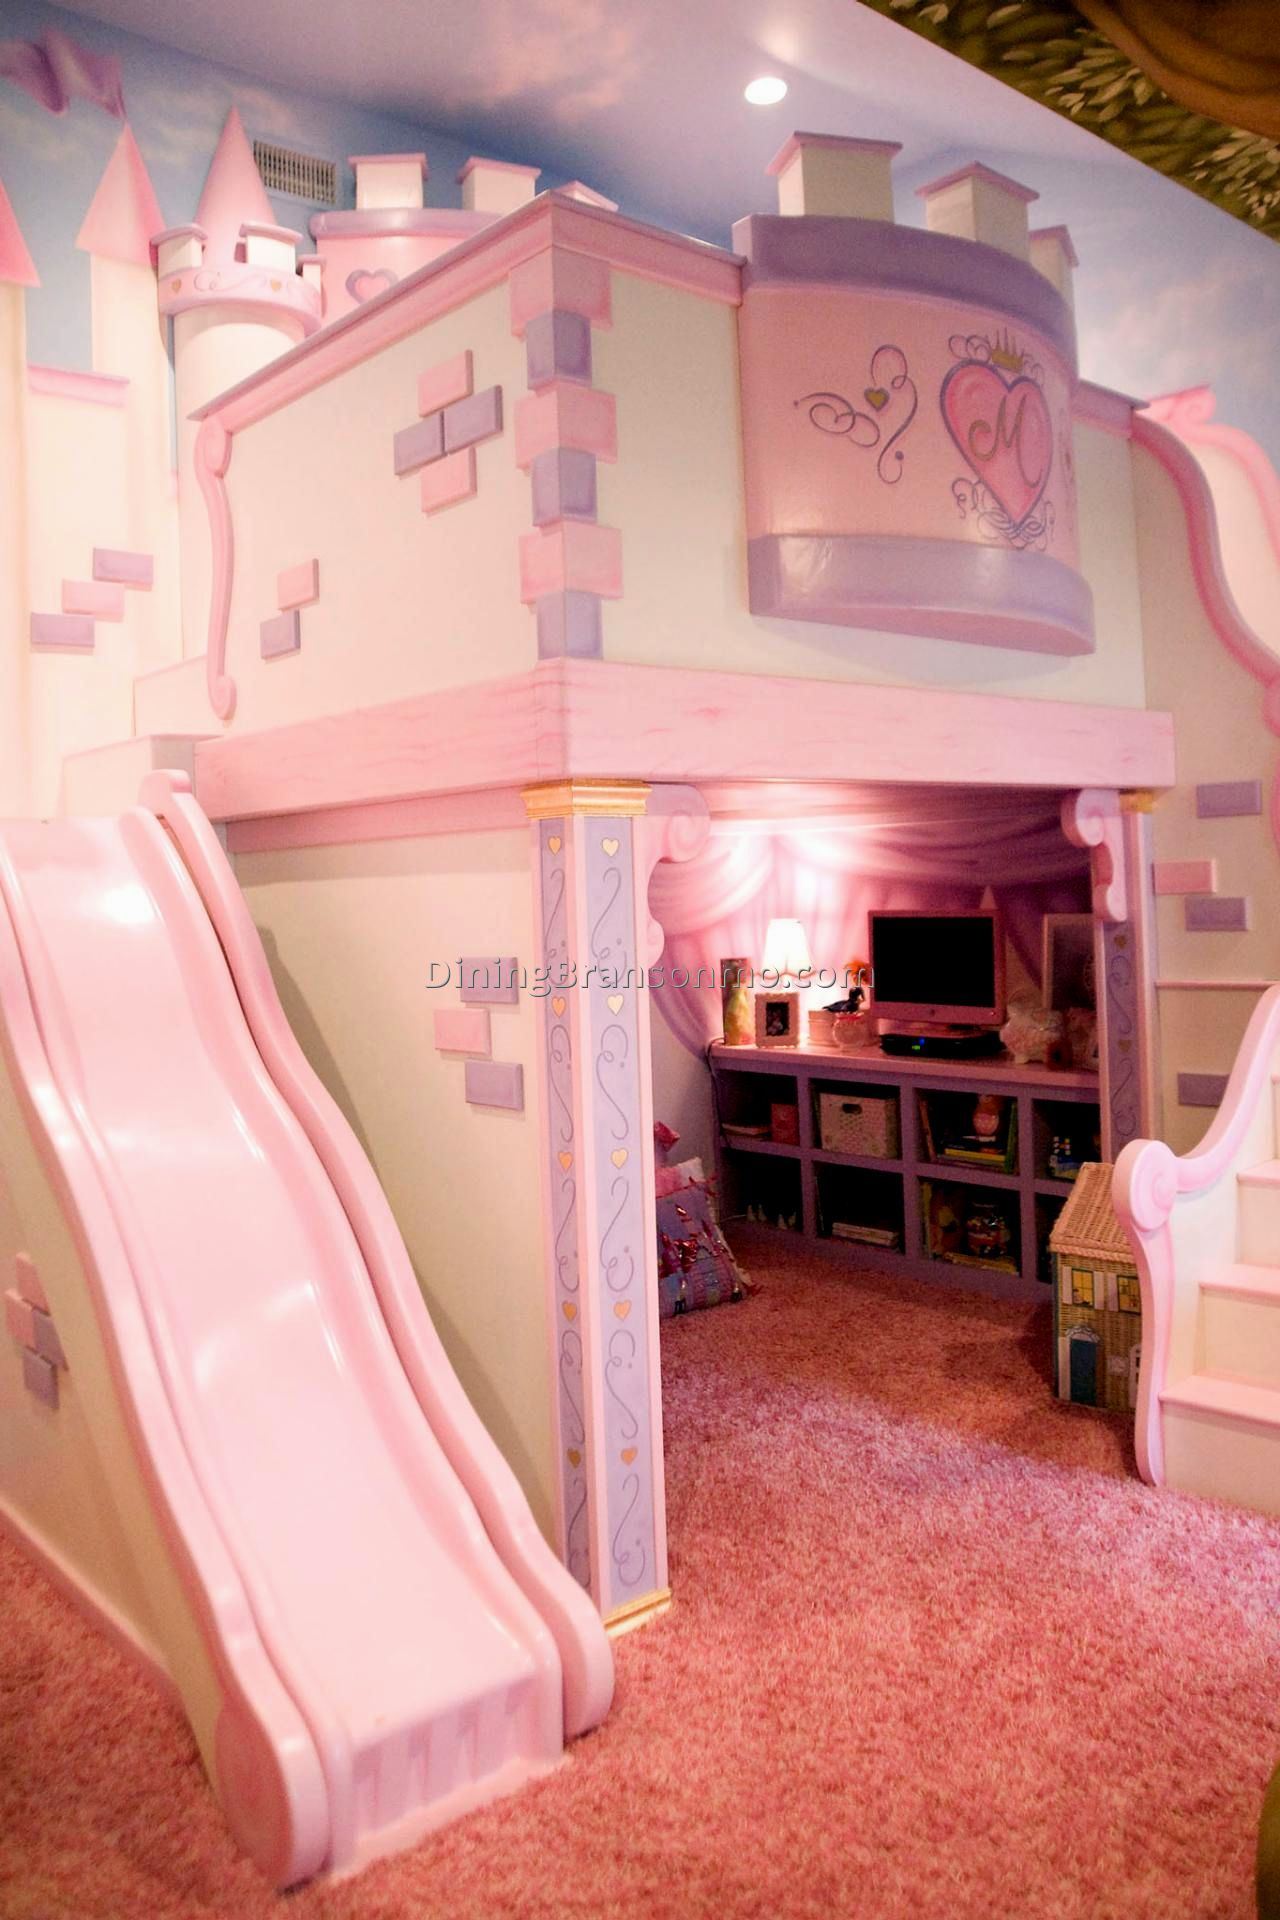 Disney Princess Bedroom Set Best Dining Room Furniture Sets Tables Picture Nori King From